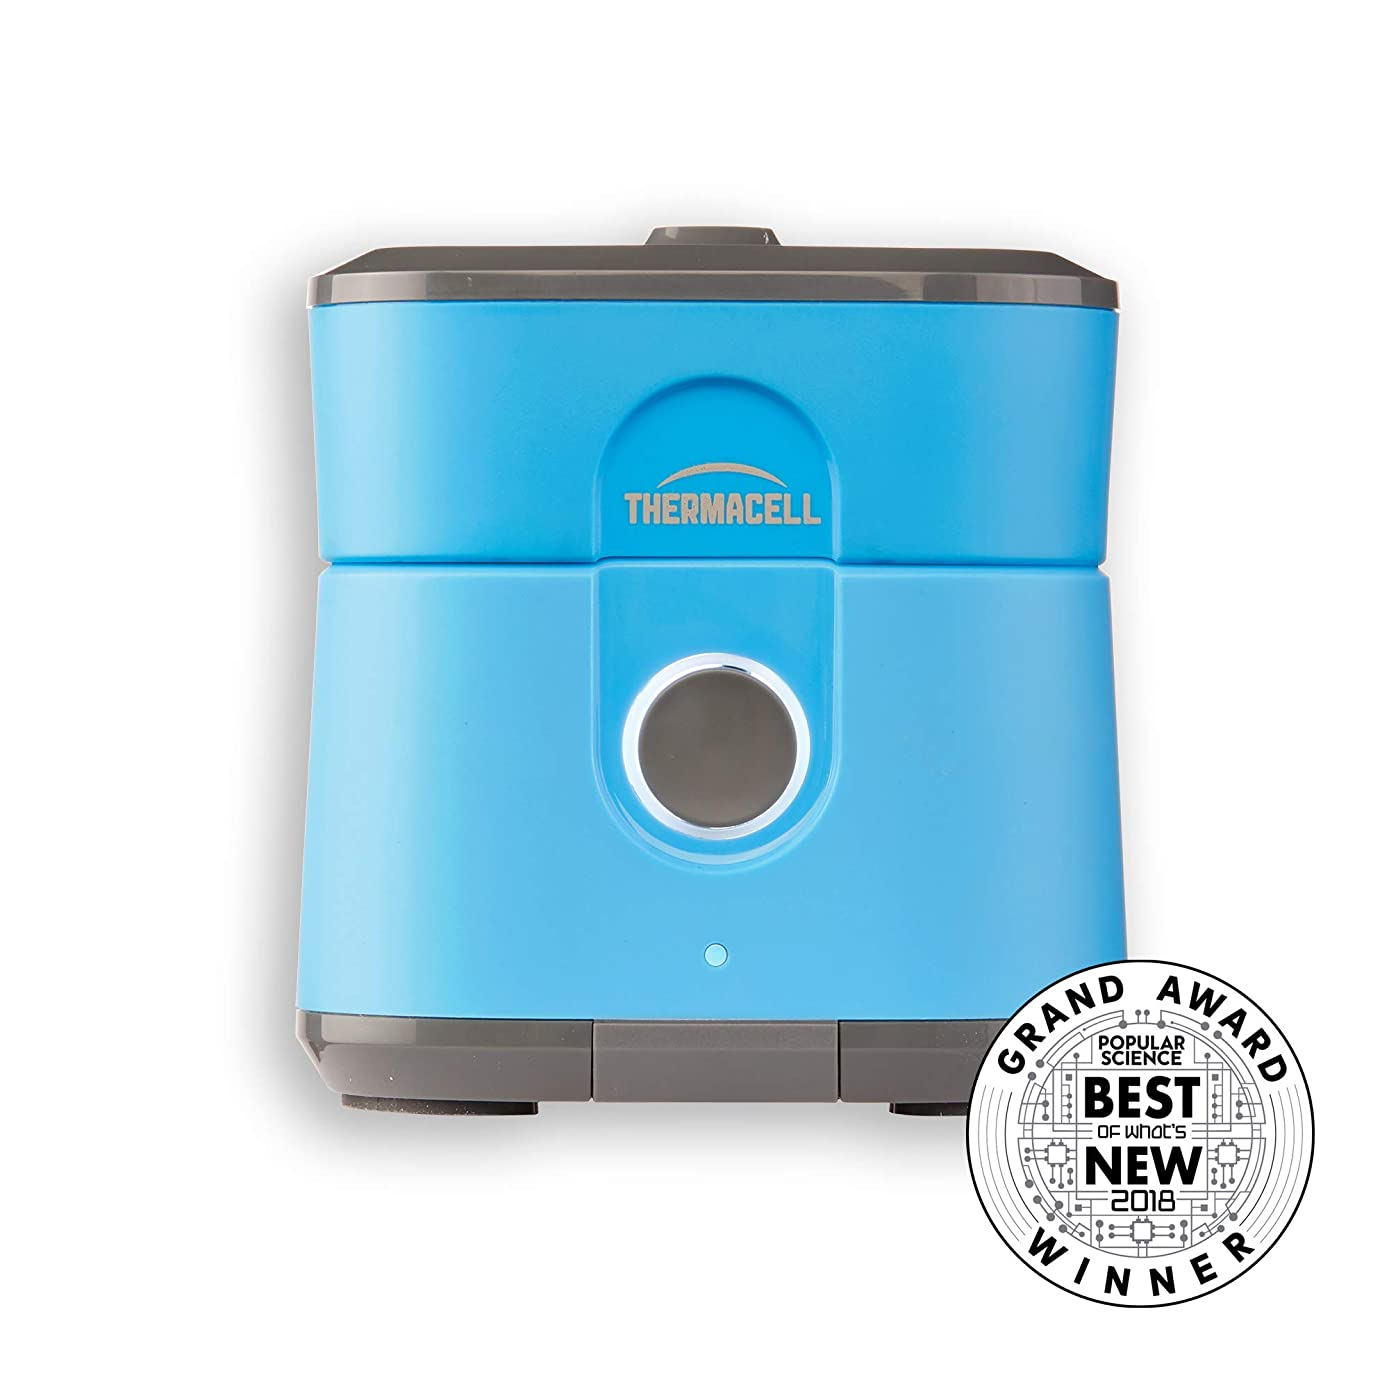 Thermacell Radius Zone Mosquito Repeller from, Gen 2.0, Blue; No Spray Mosquito Repellent; Rechargeable; Protect Outdoor Areas from Insects for 6.5+ Hours Per Charge; Easy to Use, Scent and DEET-Free